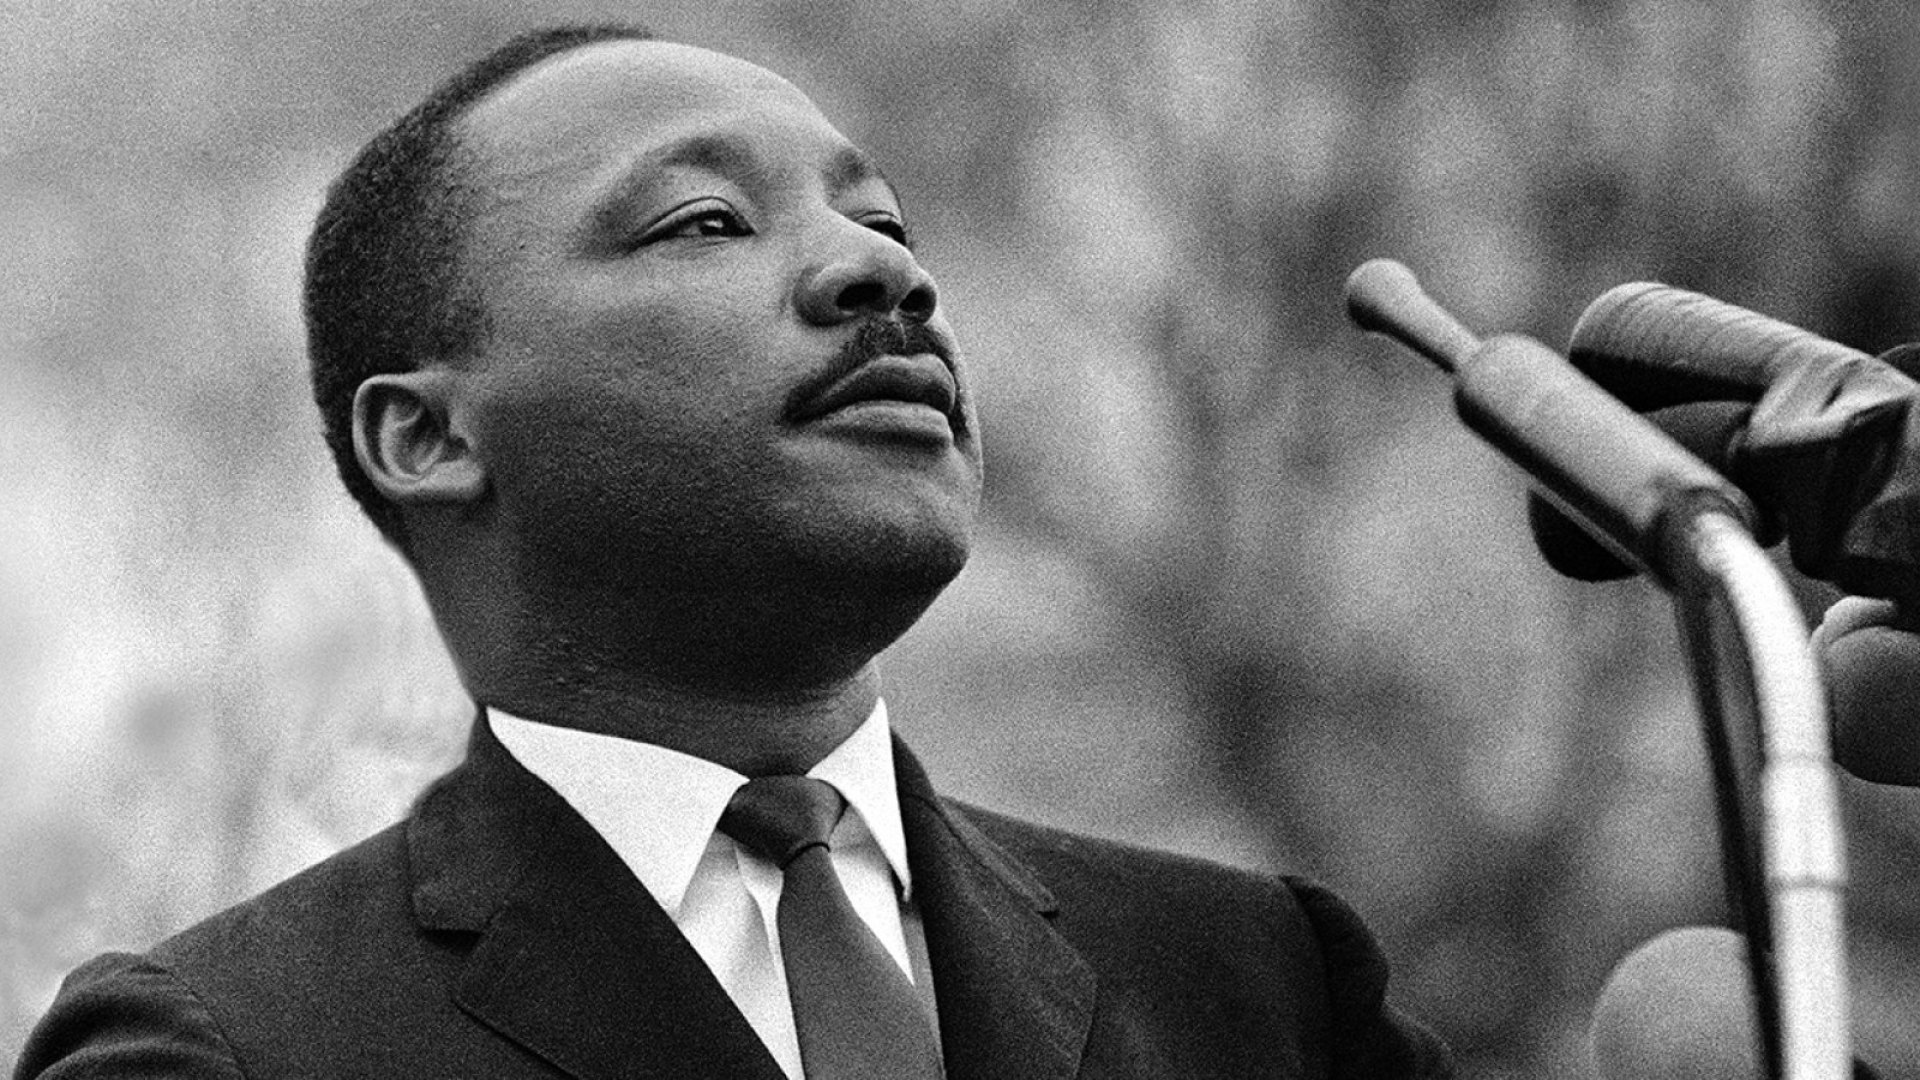 These 4 Skills Helped Martin Luther King Jr. Become a Transformational Leader